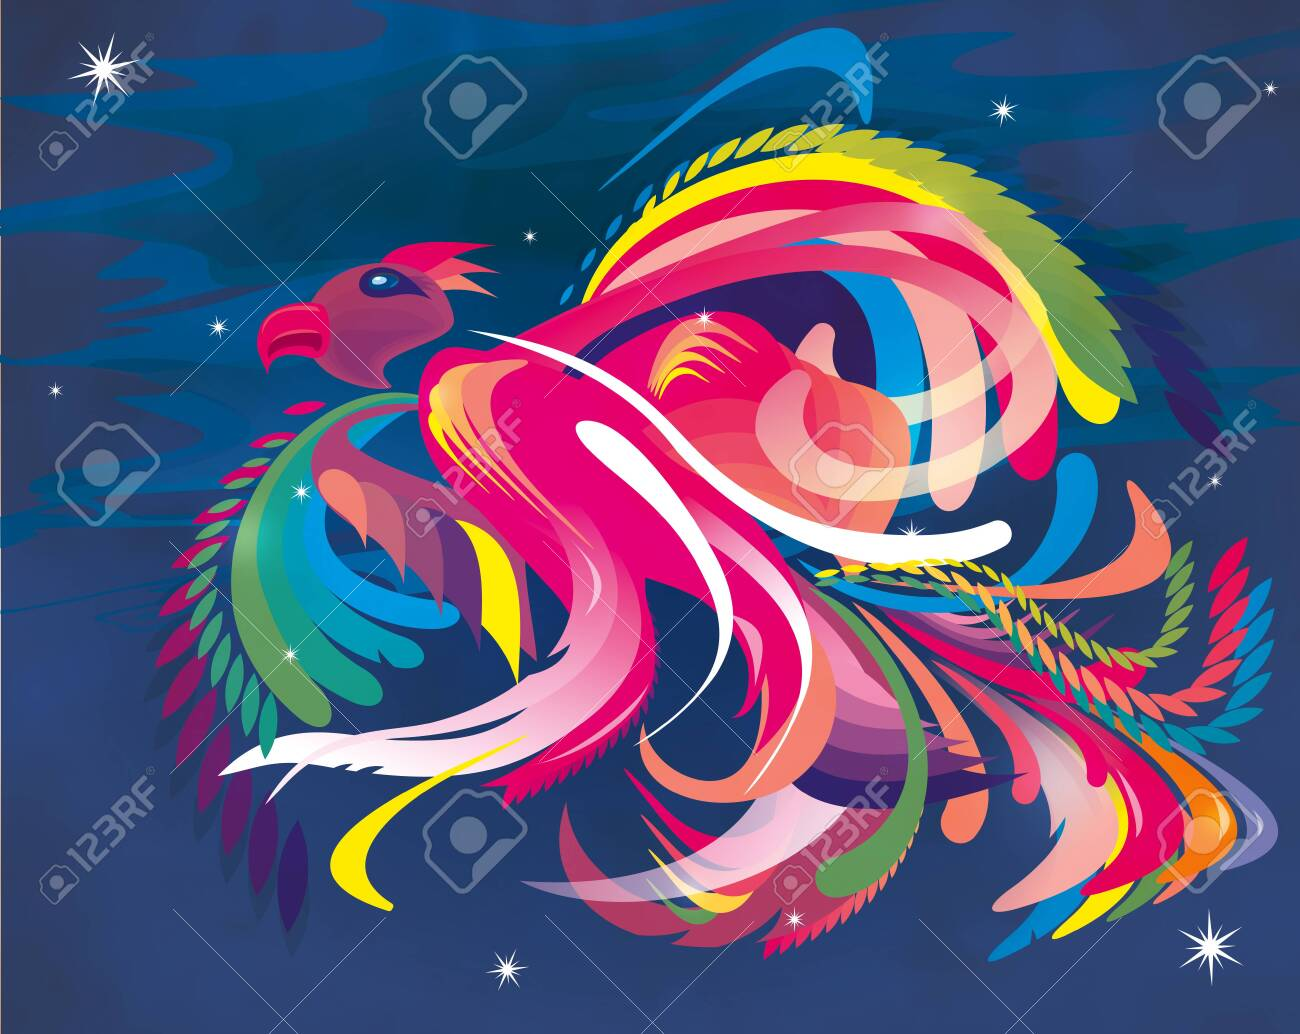 abstract illustration of a colorful bird - 120120804